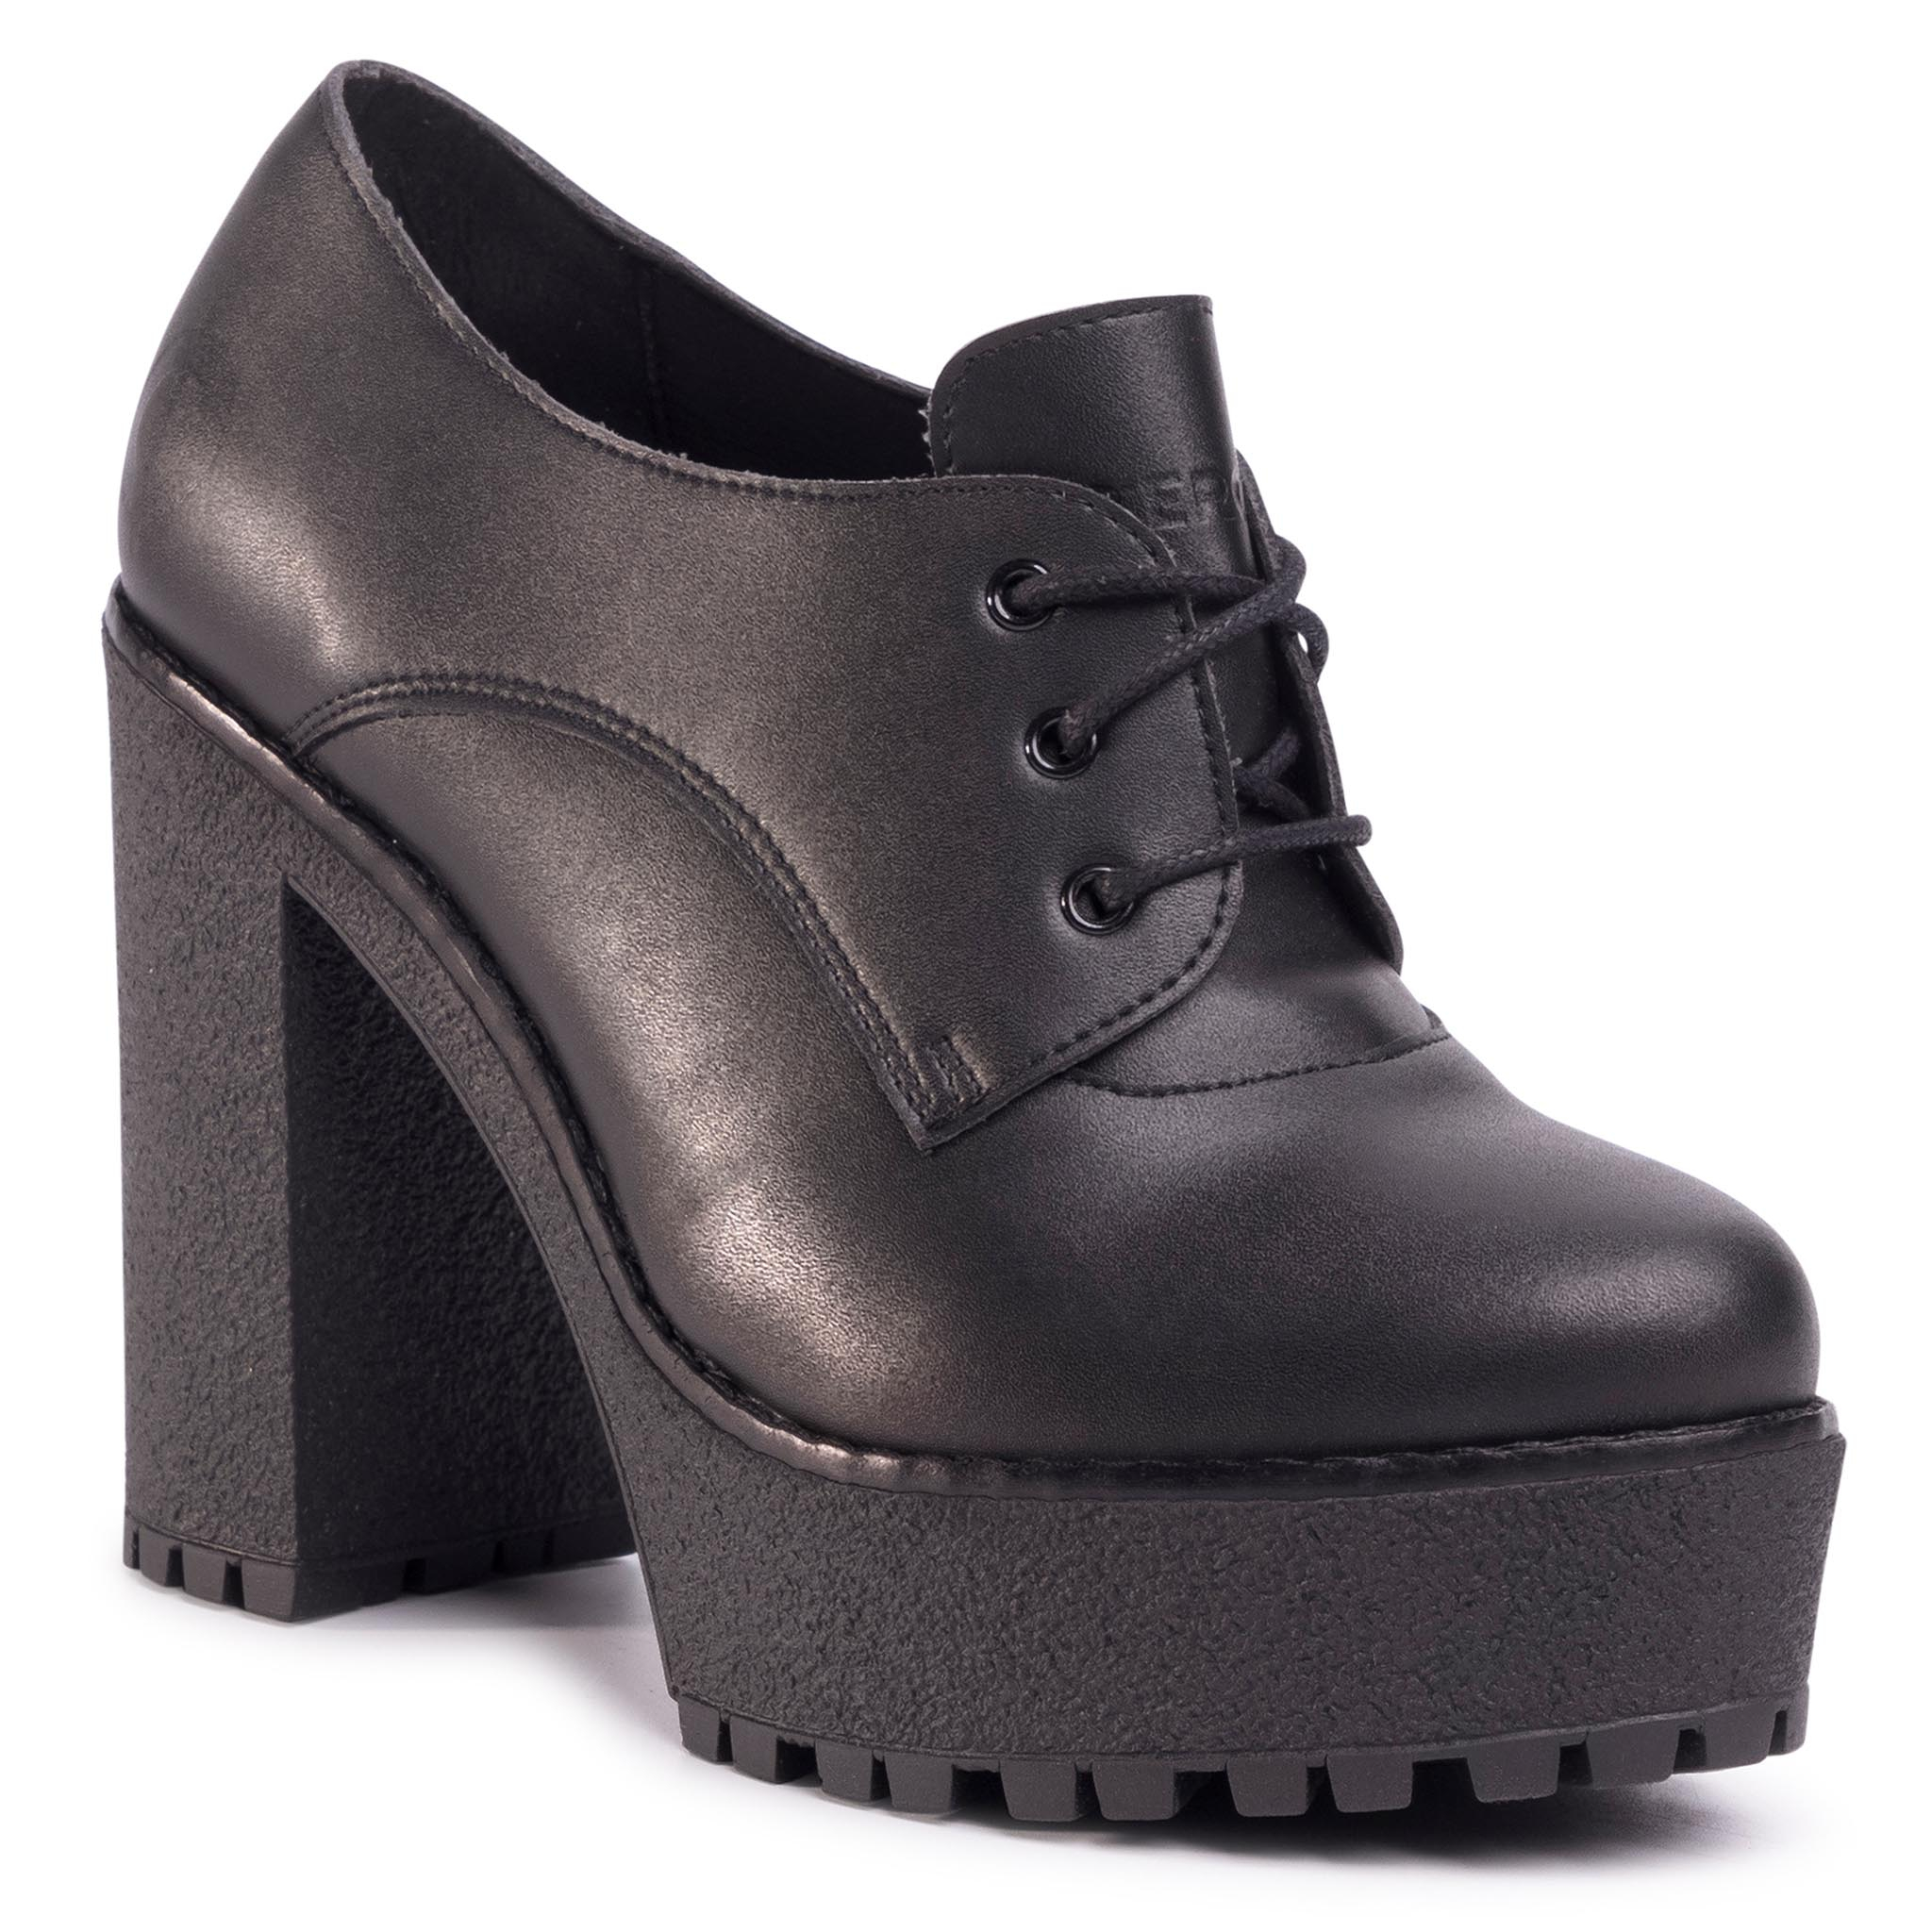 Image of Halbschuhe ALTERCORE - Trixie Vegan Black